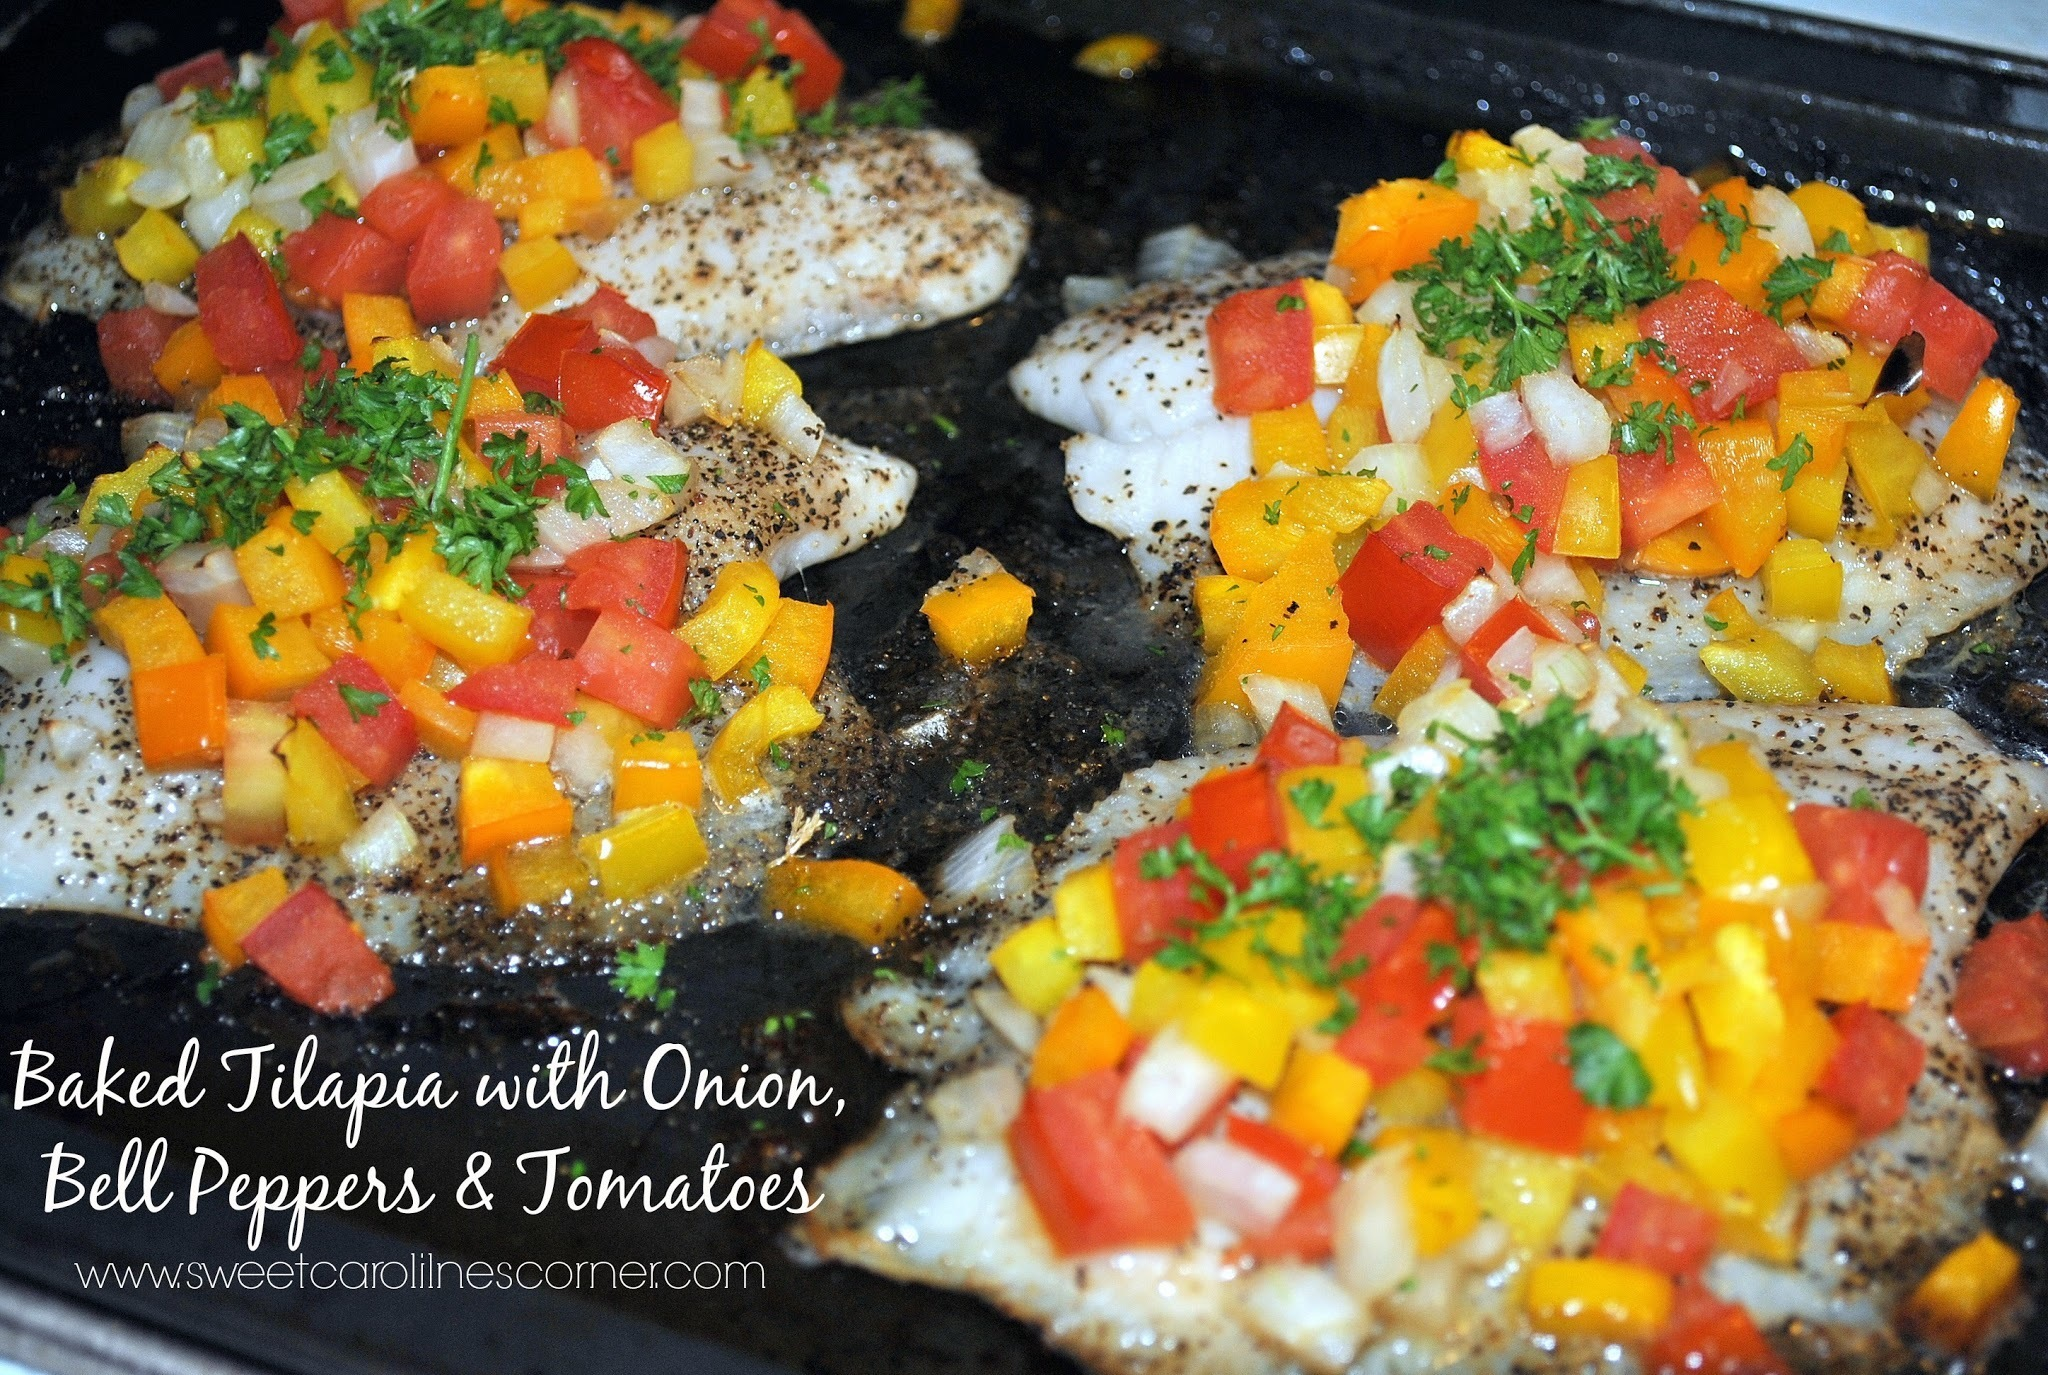 Baked Tilapia with Onion, Bell Peppers & Tomatoes